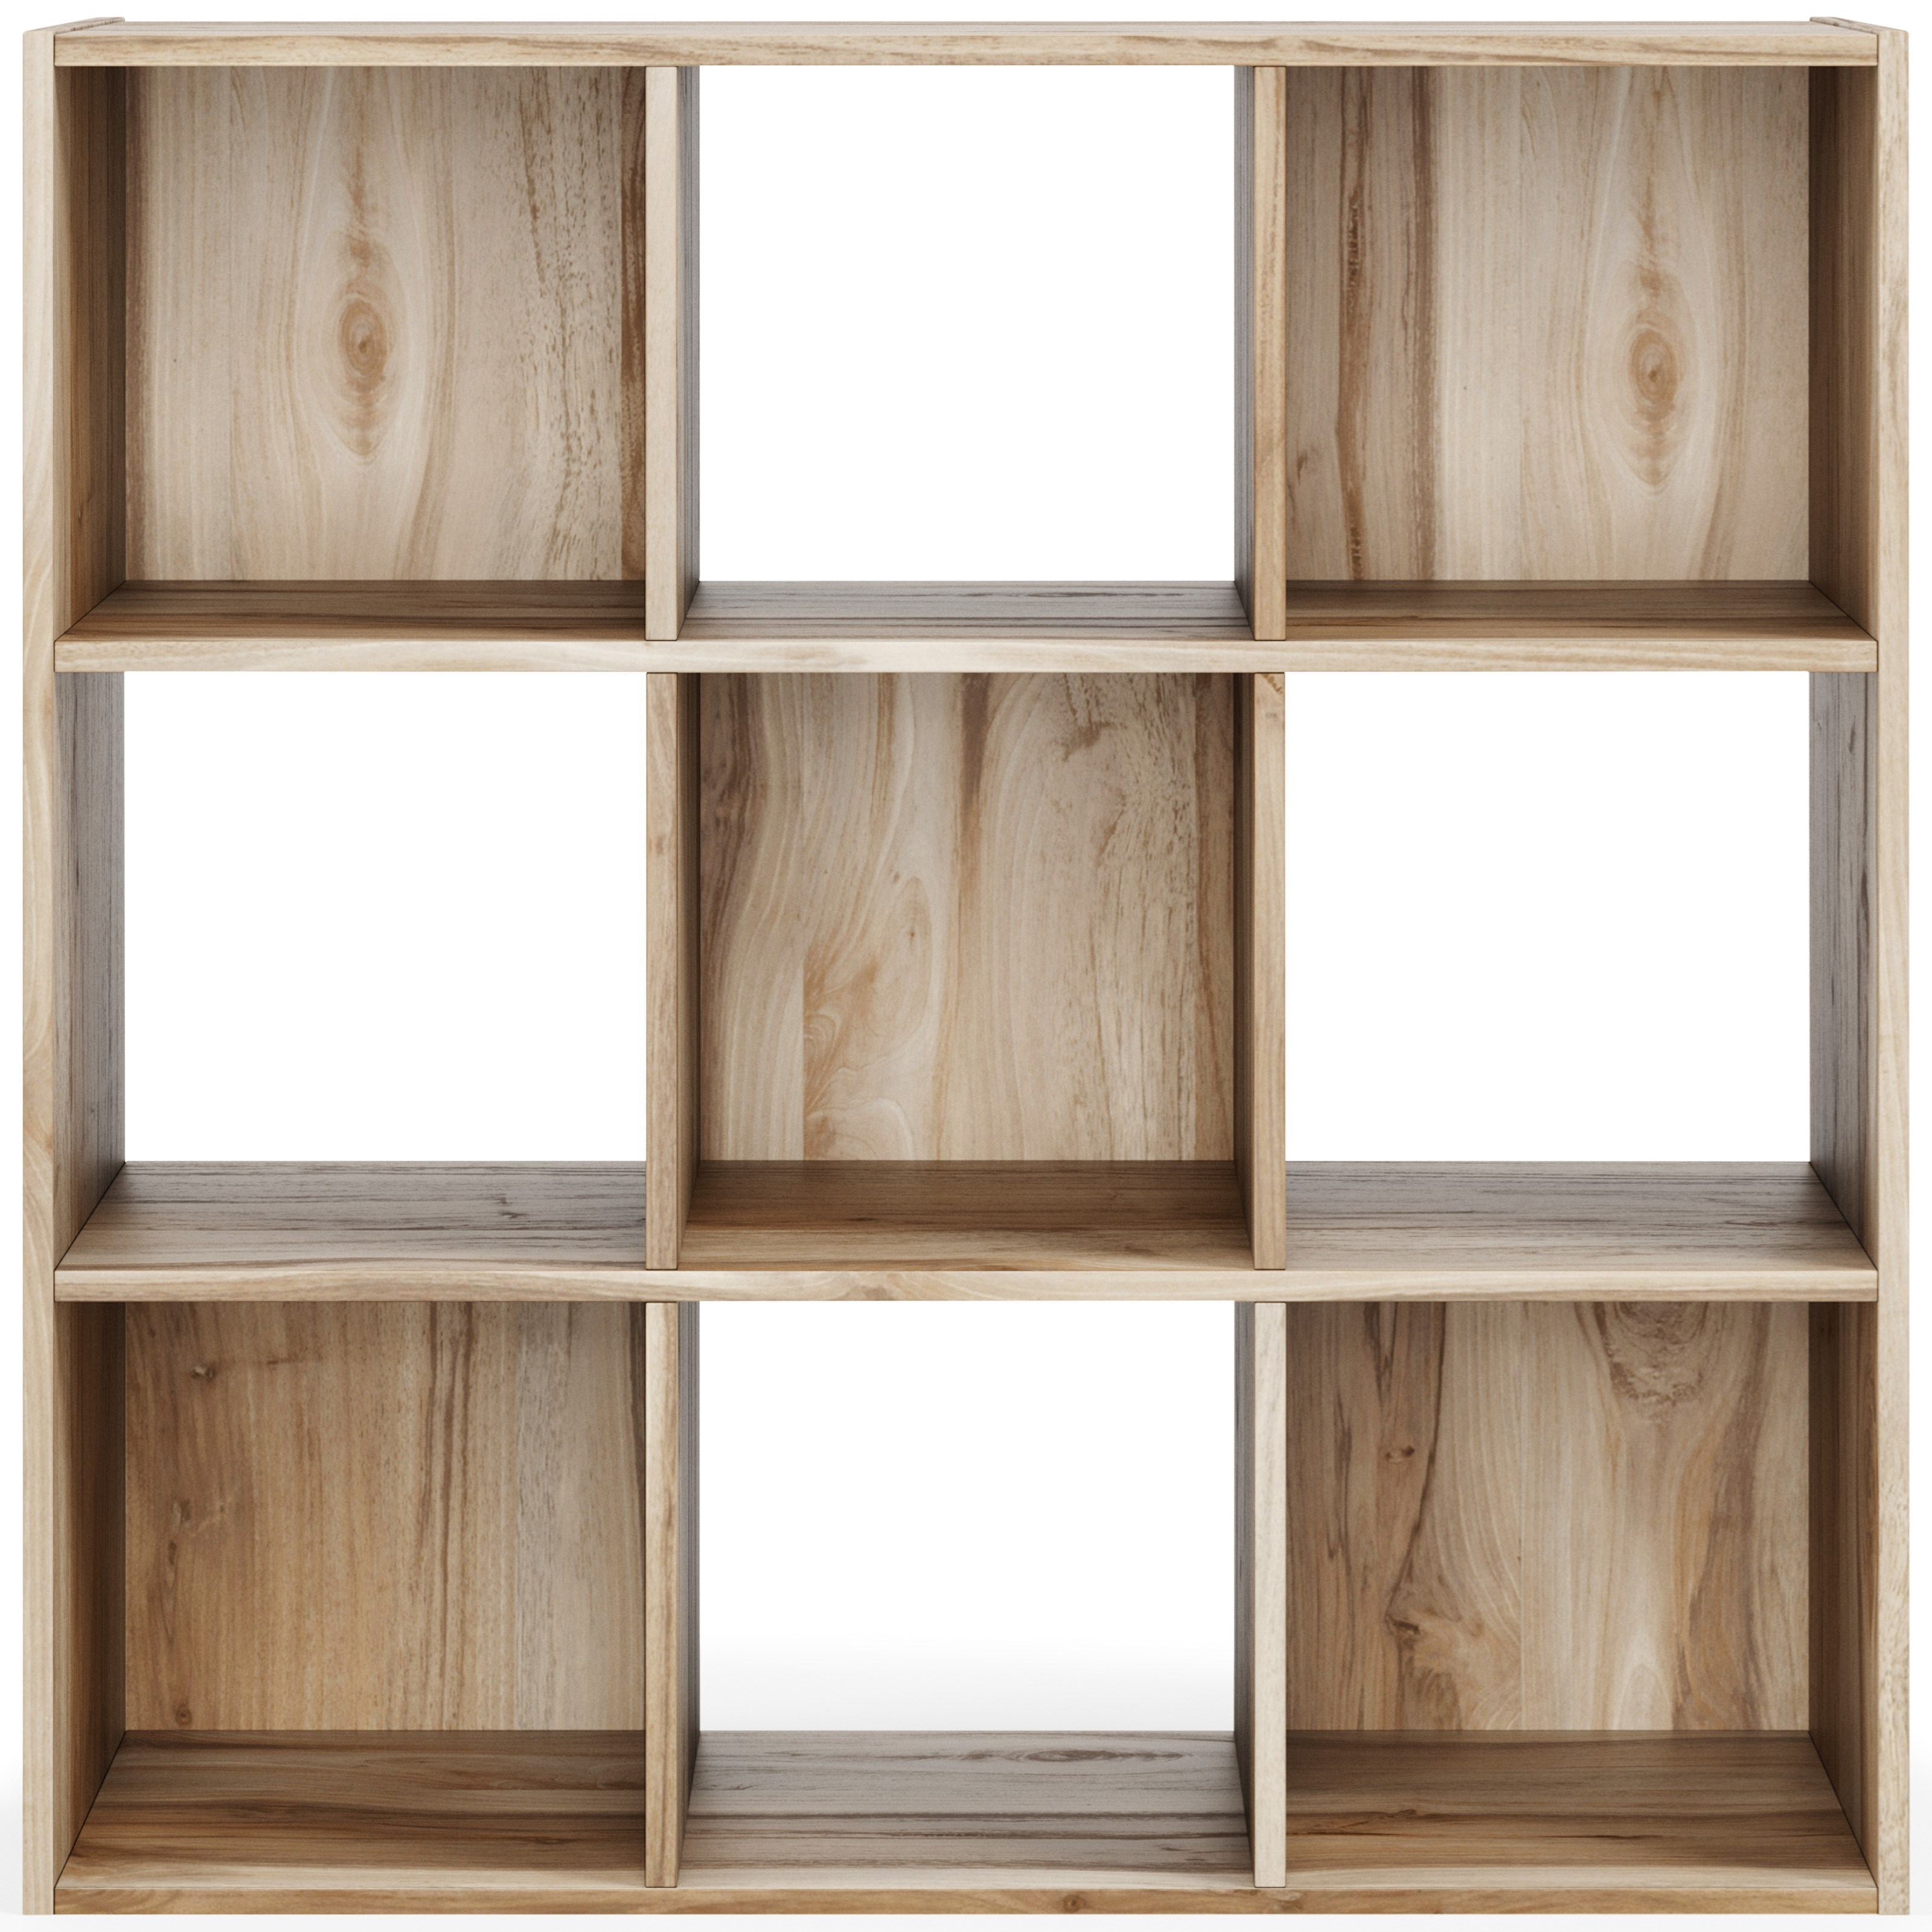 Vaibryn Nine Cube Organizer by Signature Design by Ashley at Northeast Factory Direct